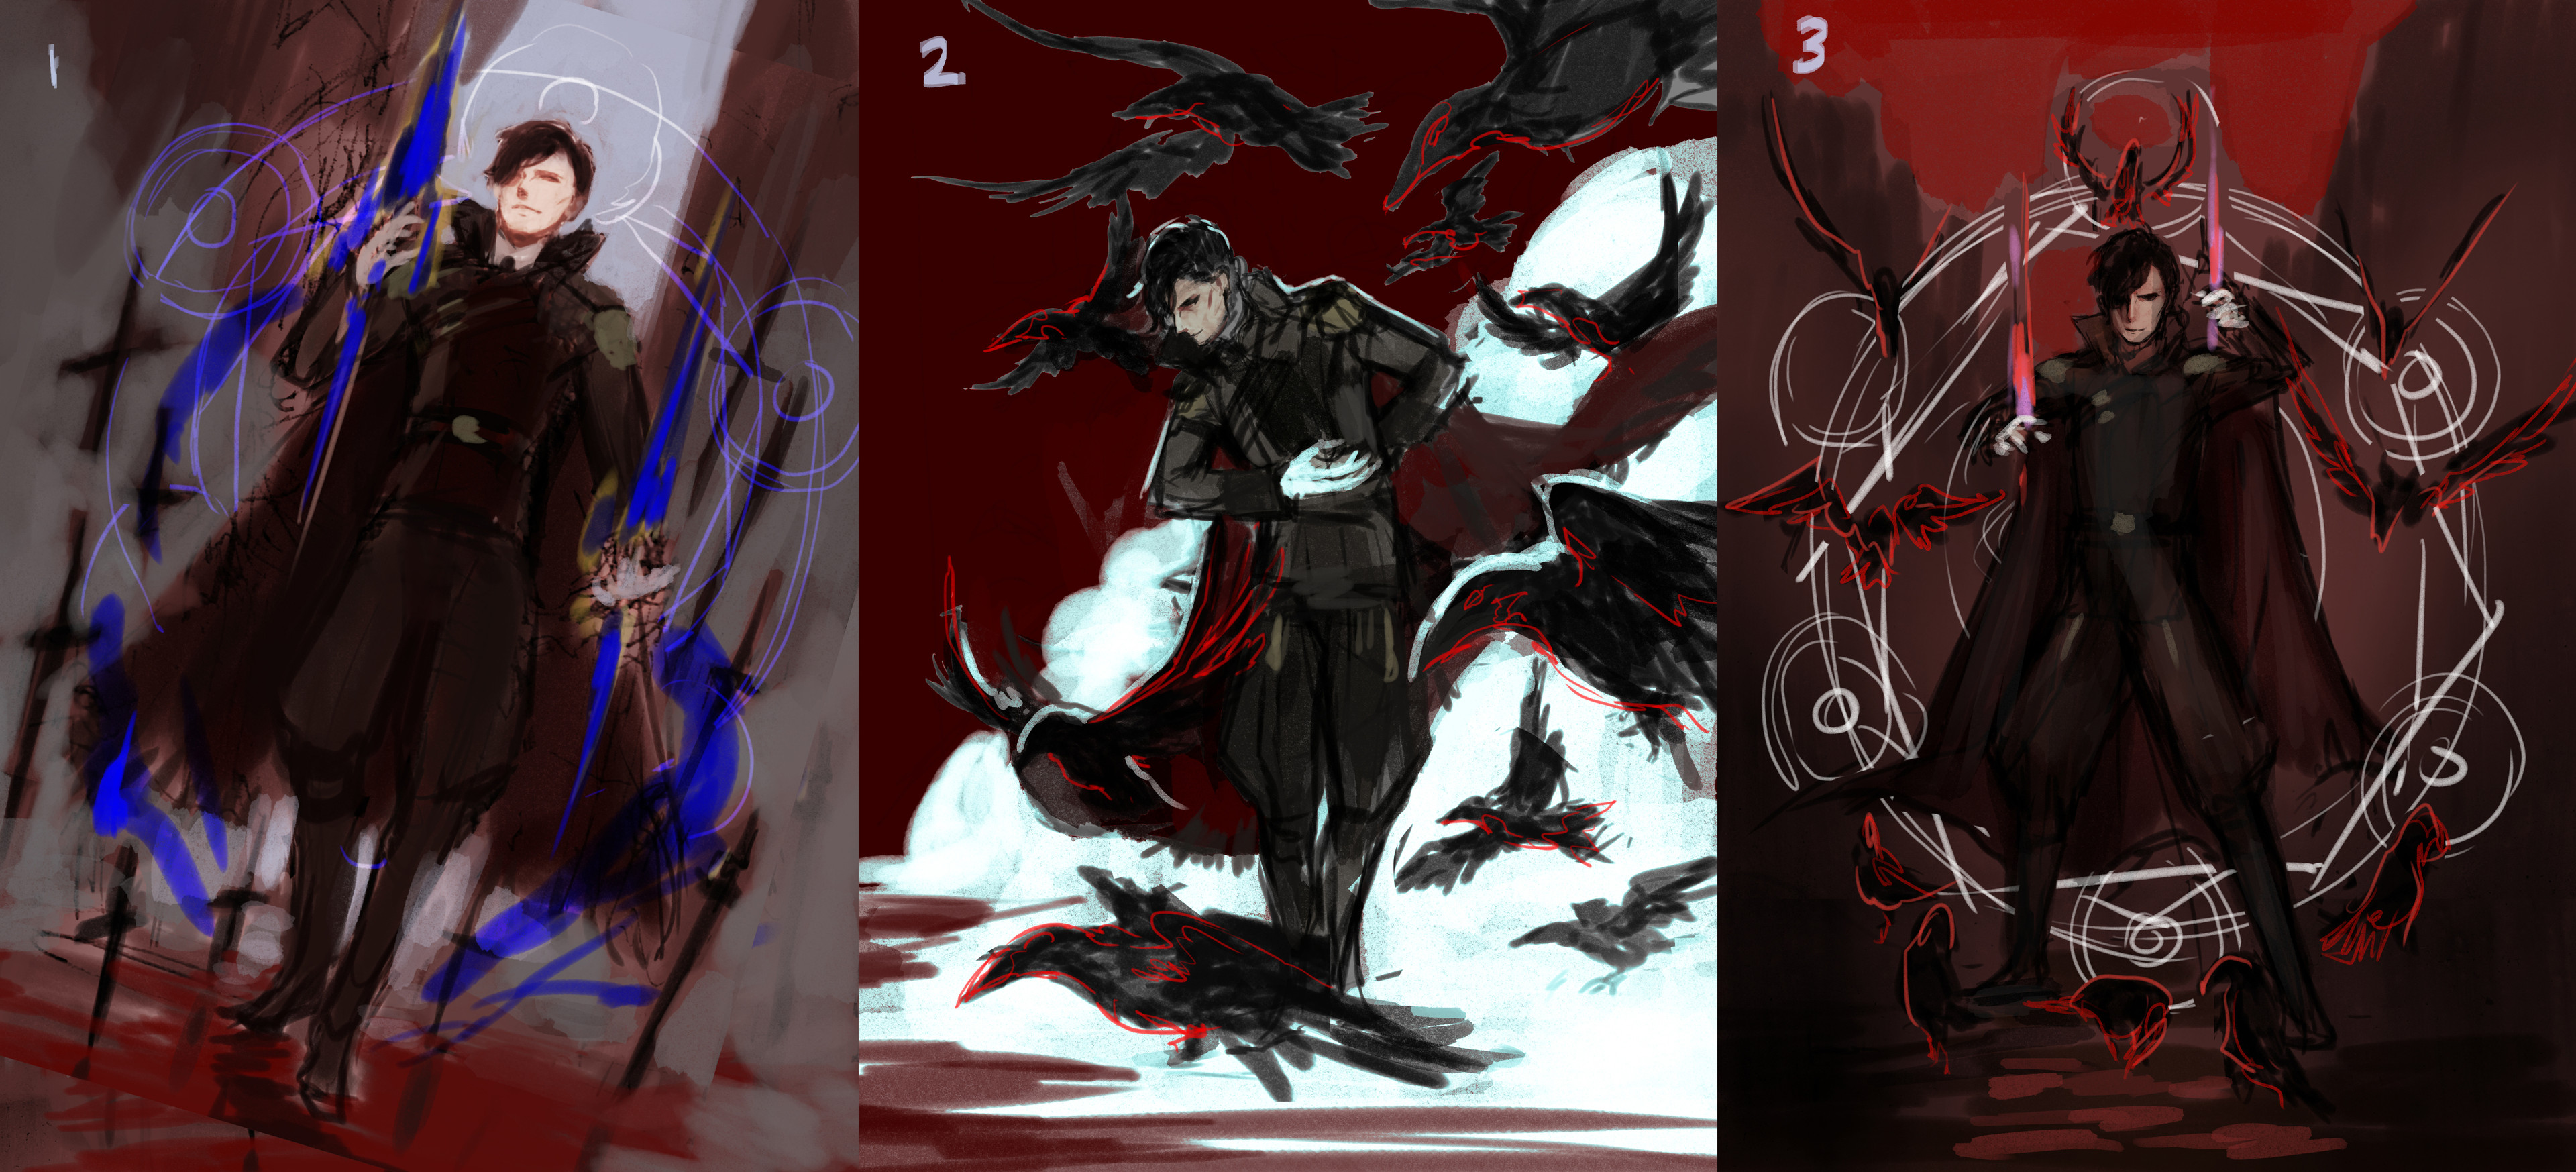 Composition sketches. Final Image is a variation of 2 because I wanted something more dynamic. It was between knives and crows to represent the card value